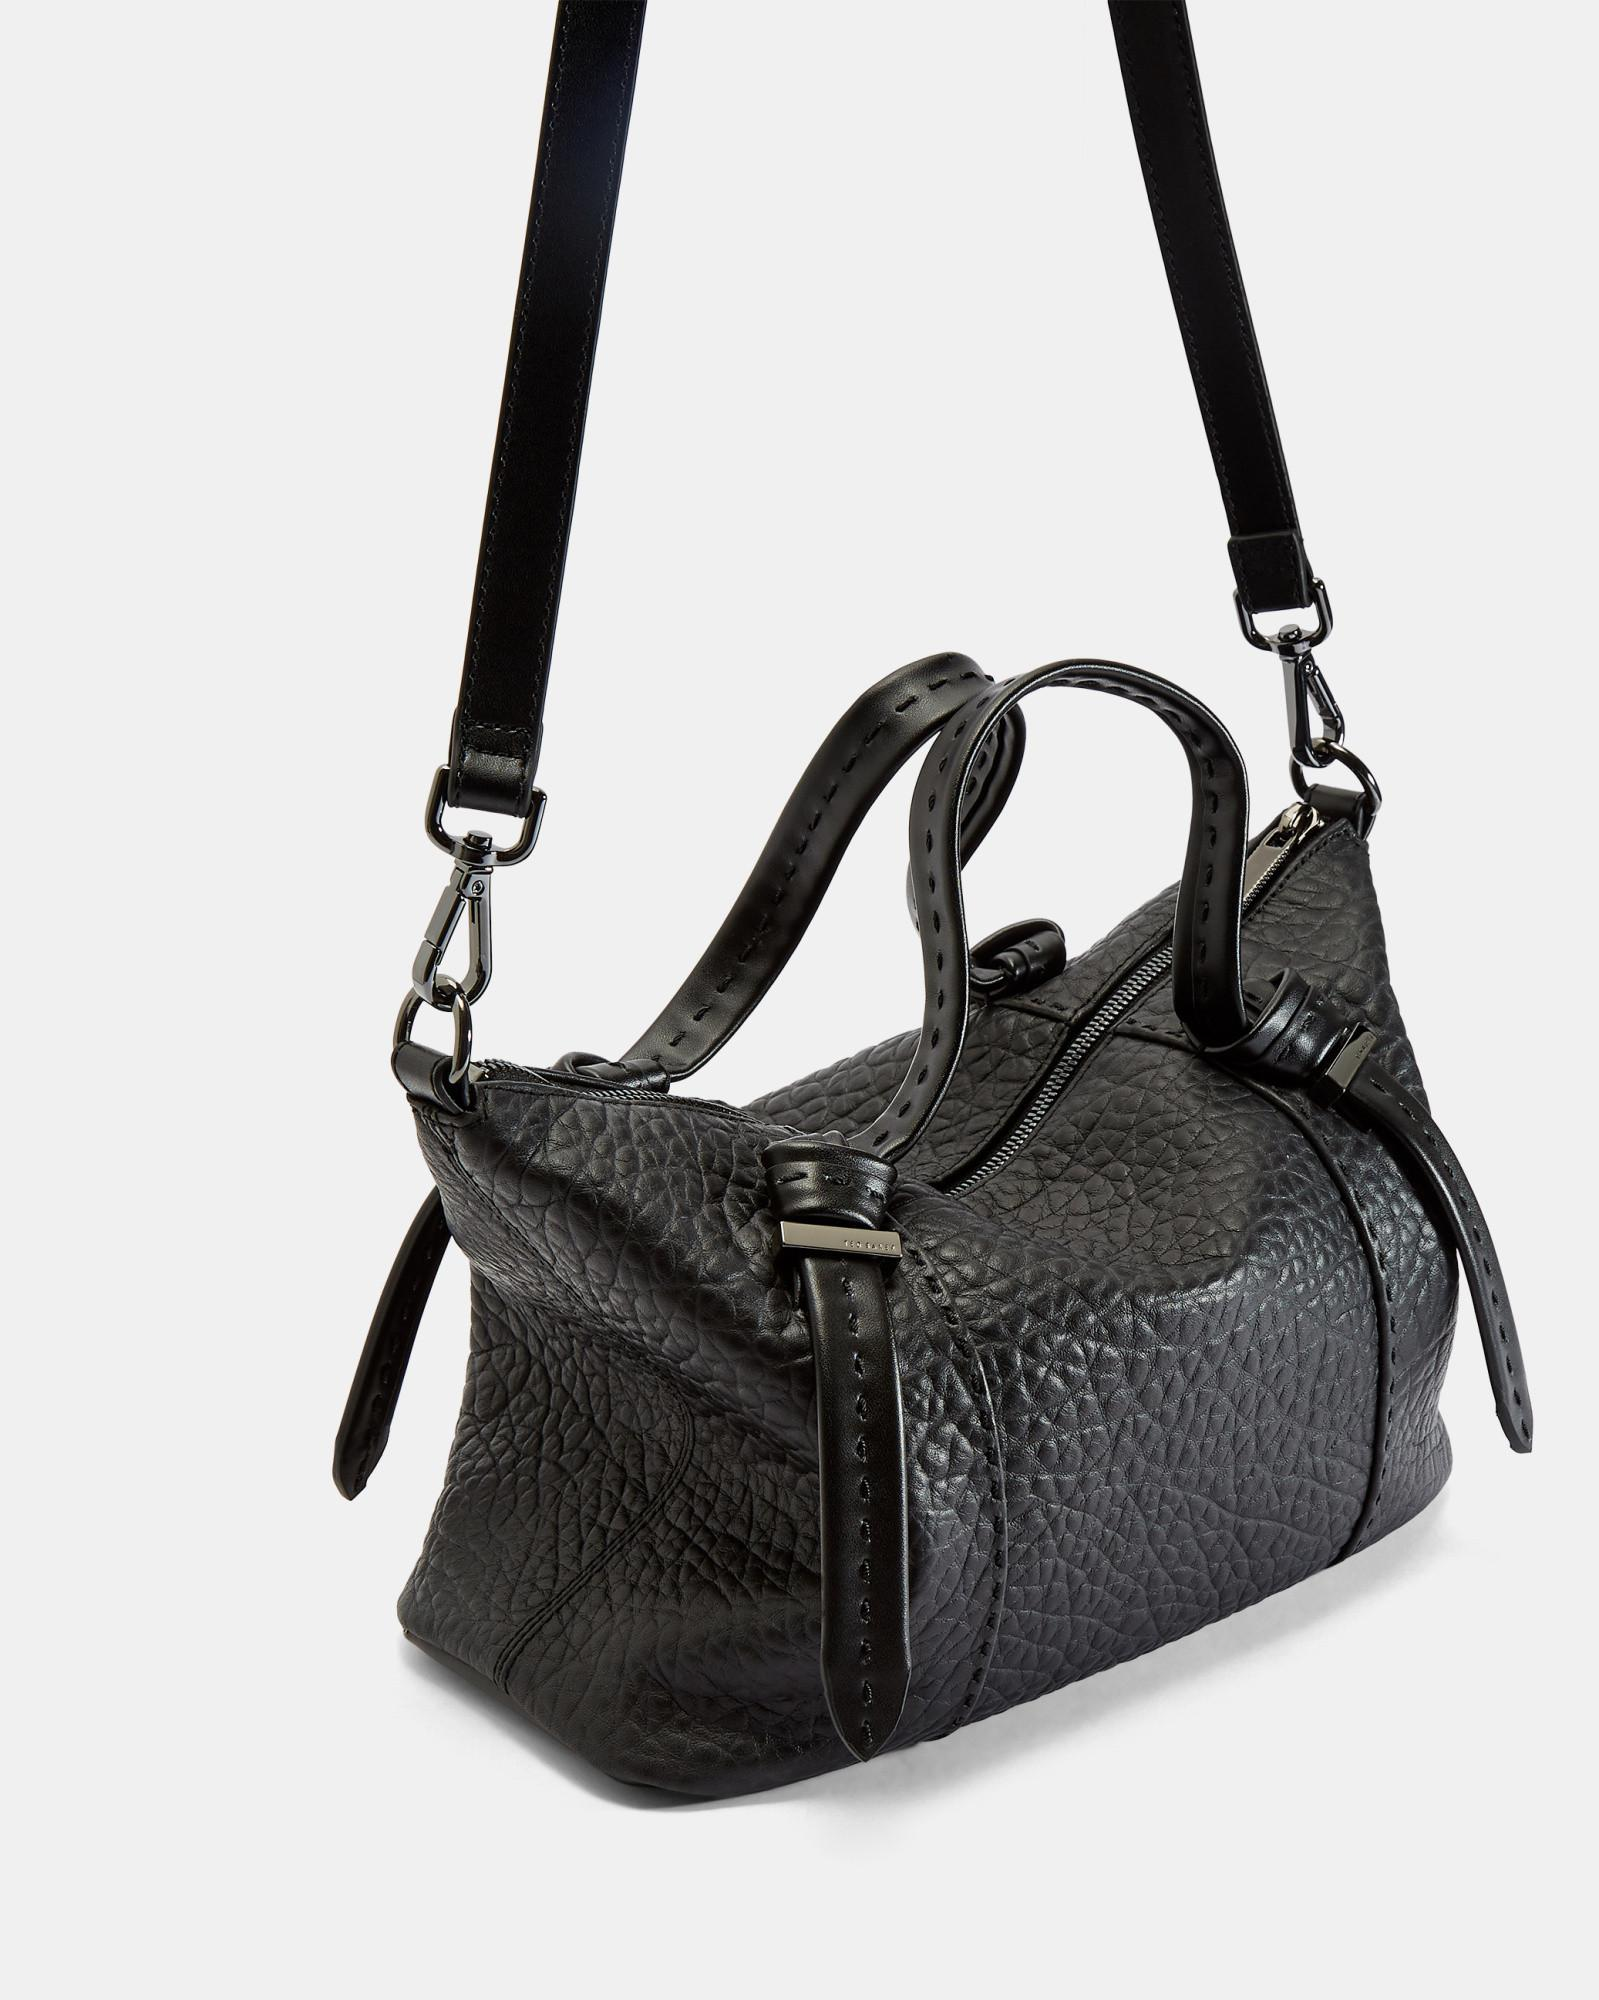 10a82cd188fd2c Lyst - Ted Baker Knotted Handle Small Leather Tote Bag in Black